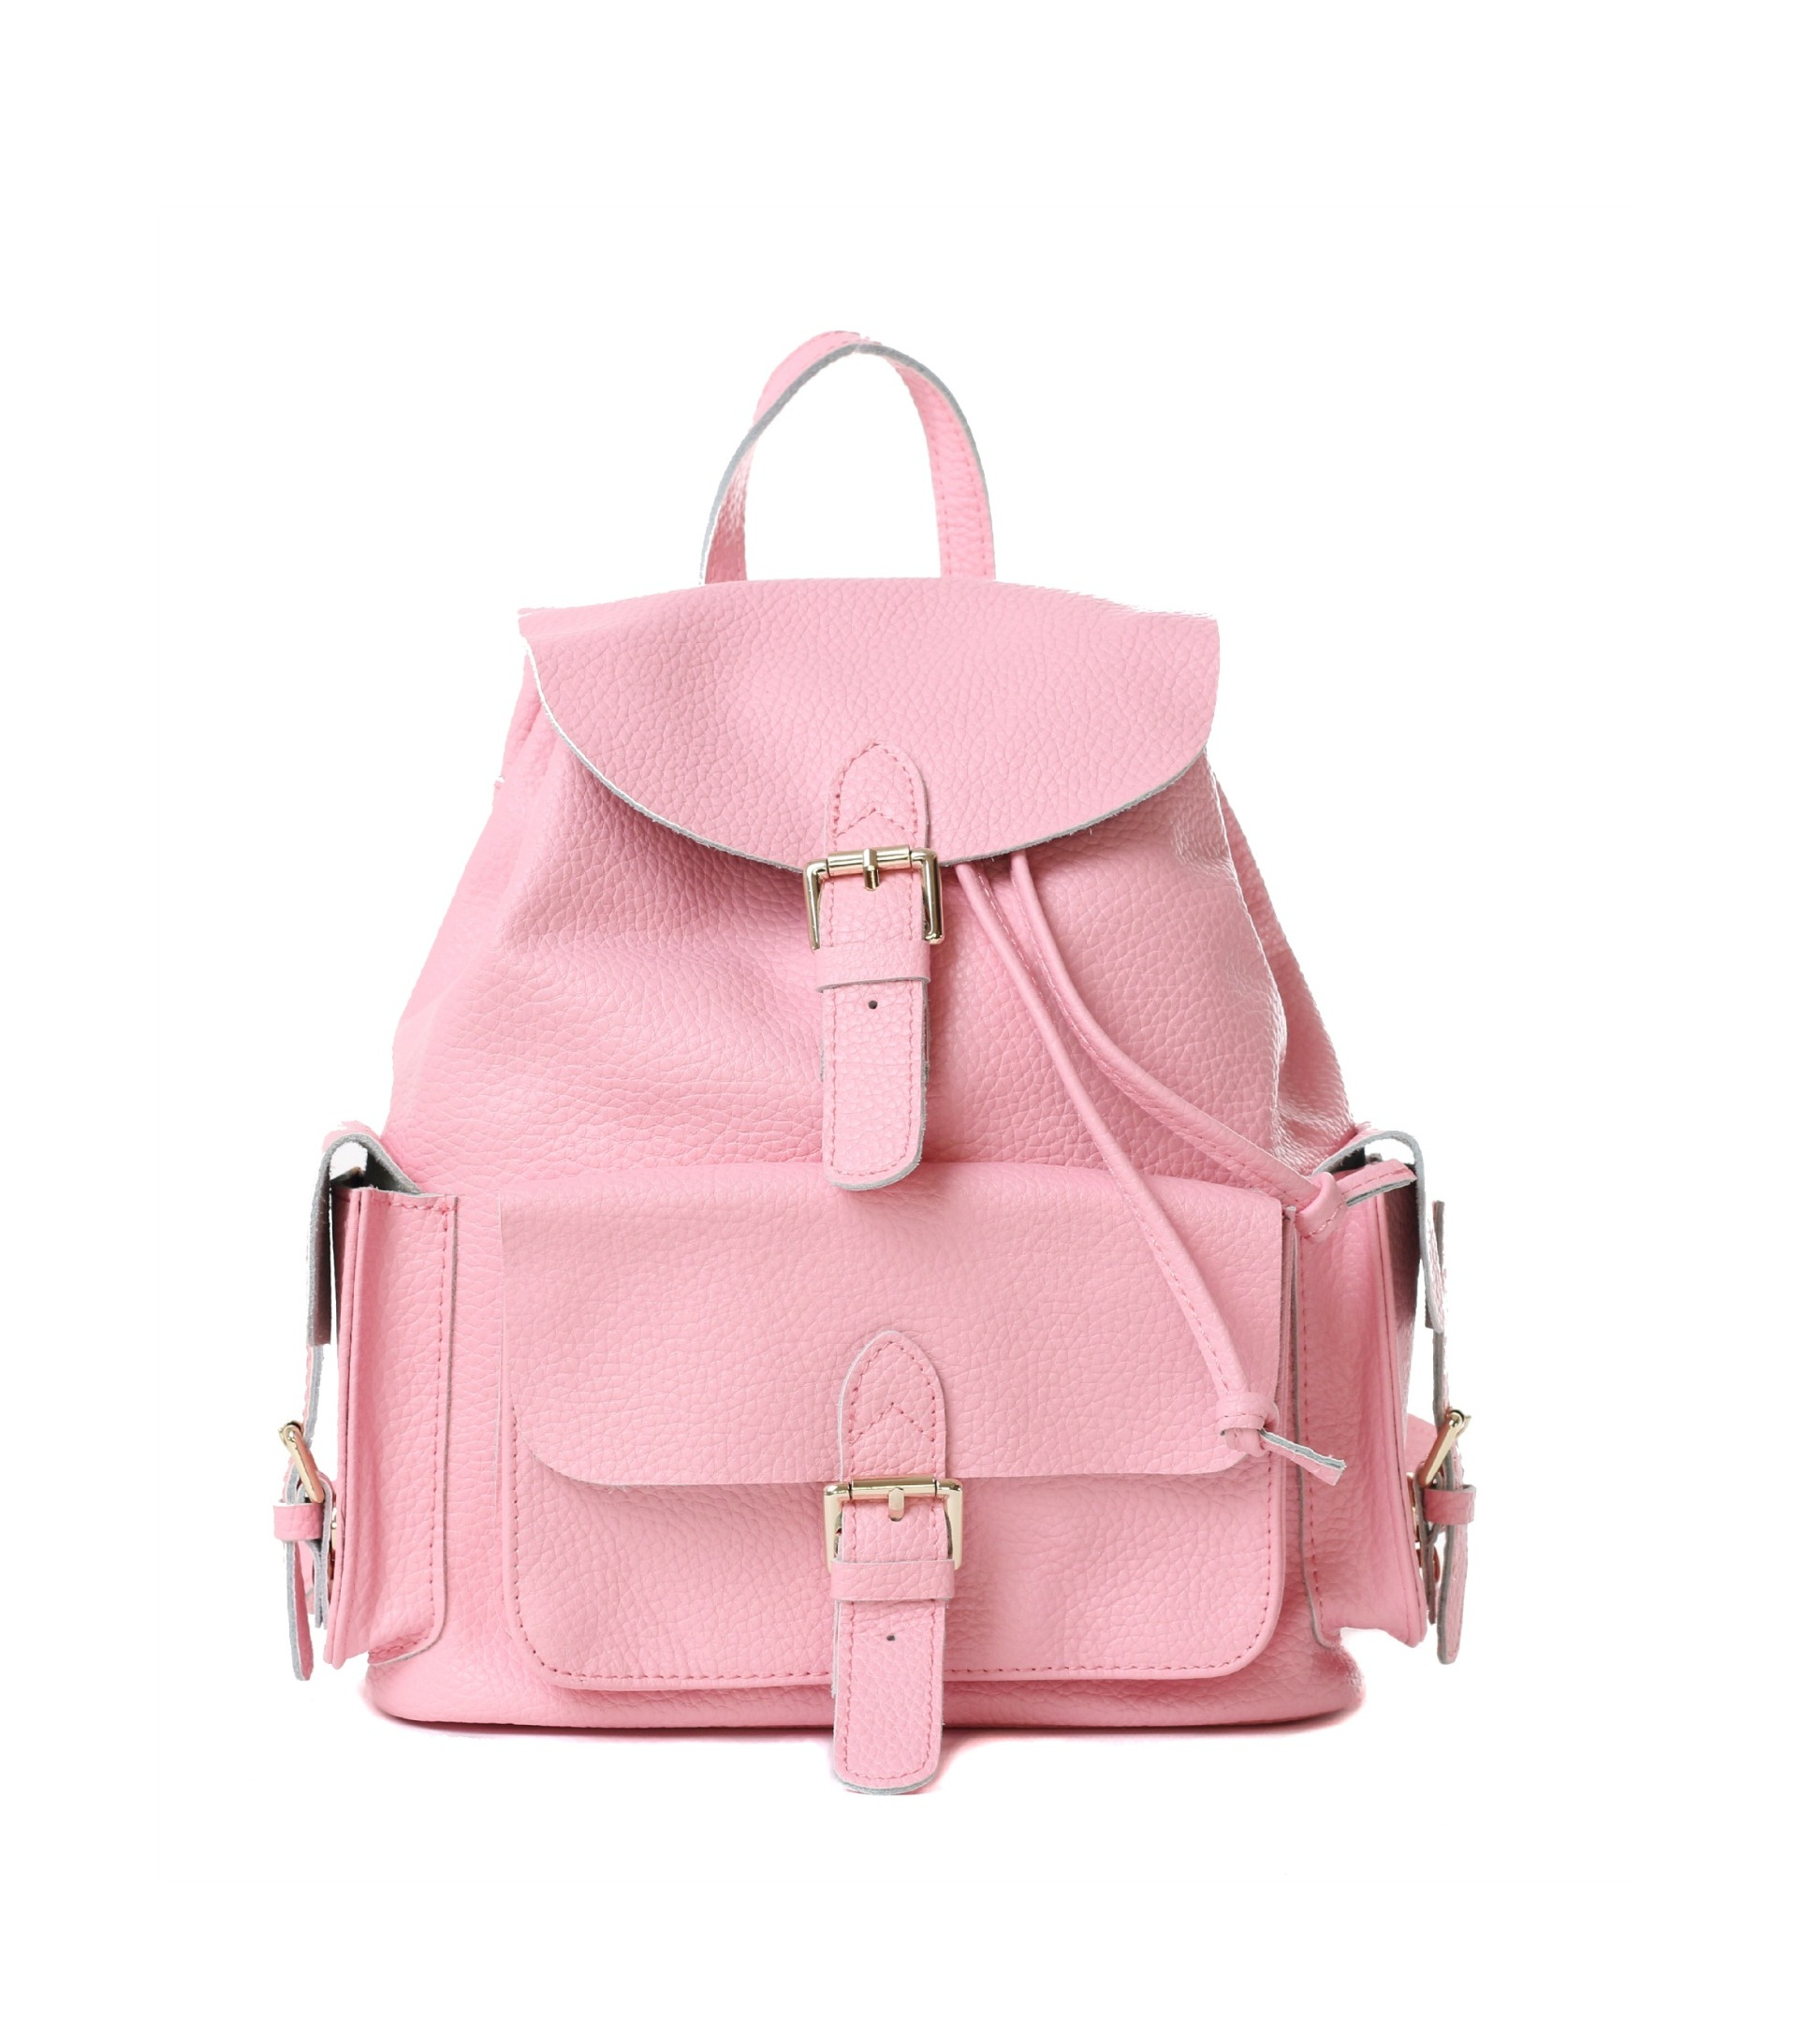 Pink Backpack Purse CLS7wS5i